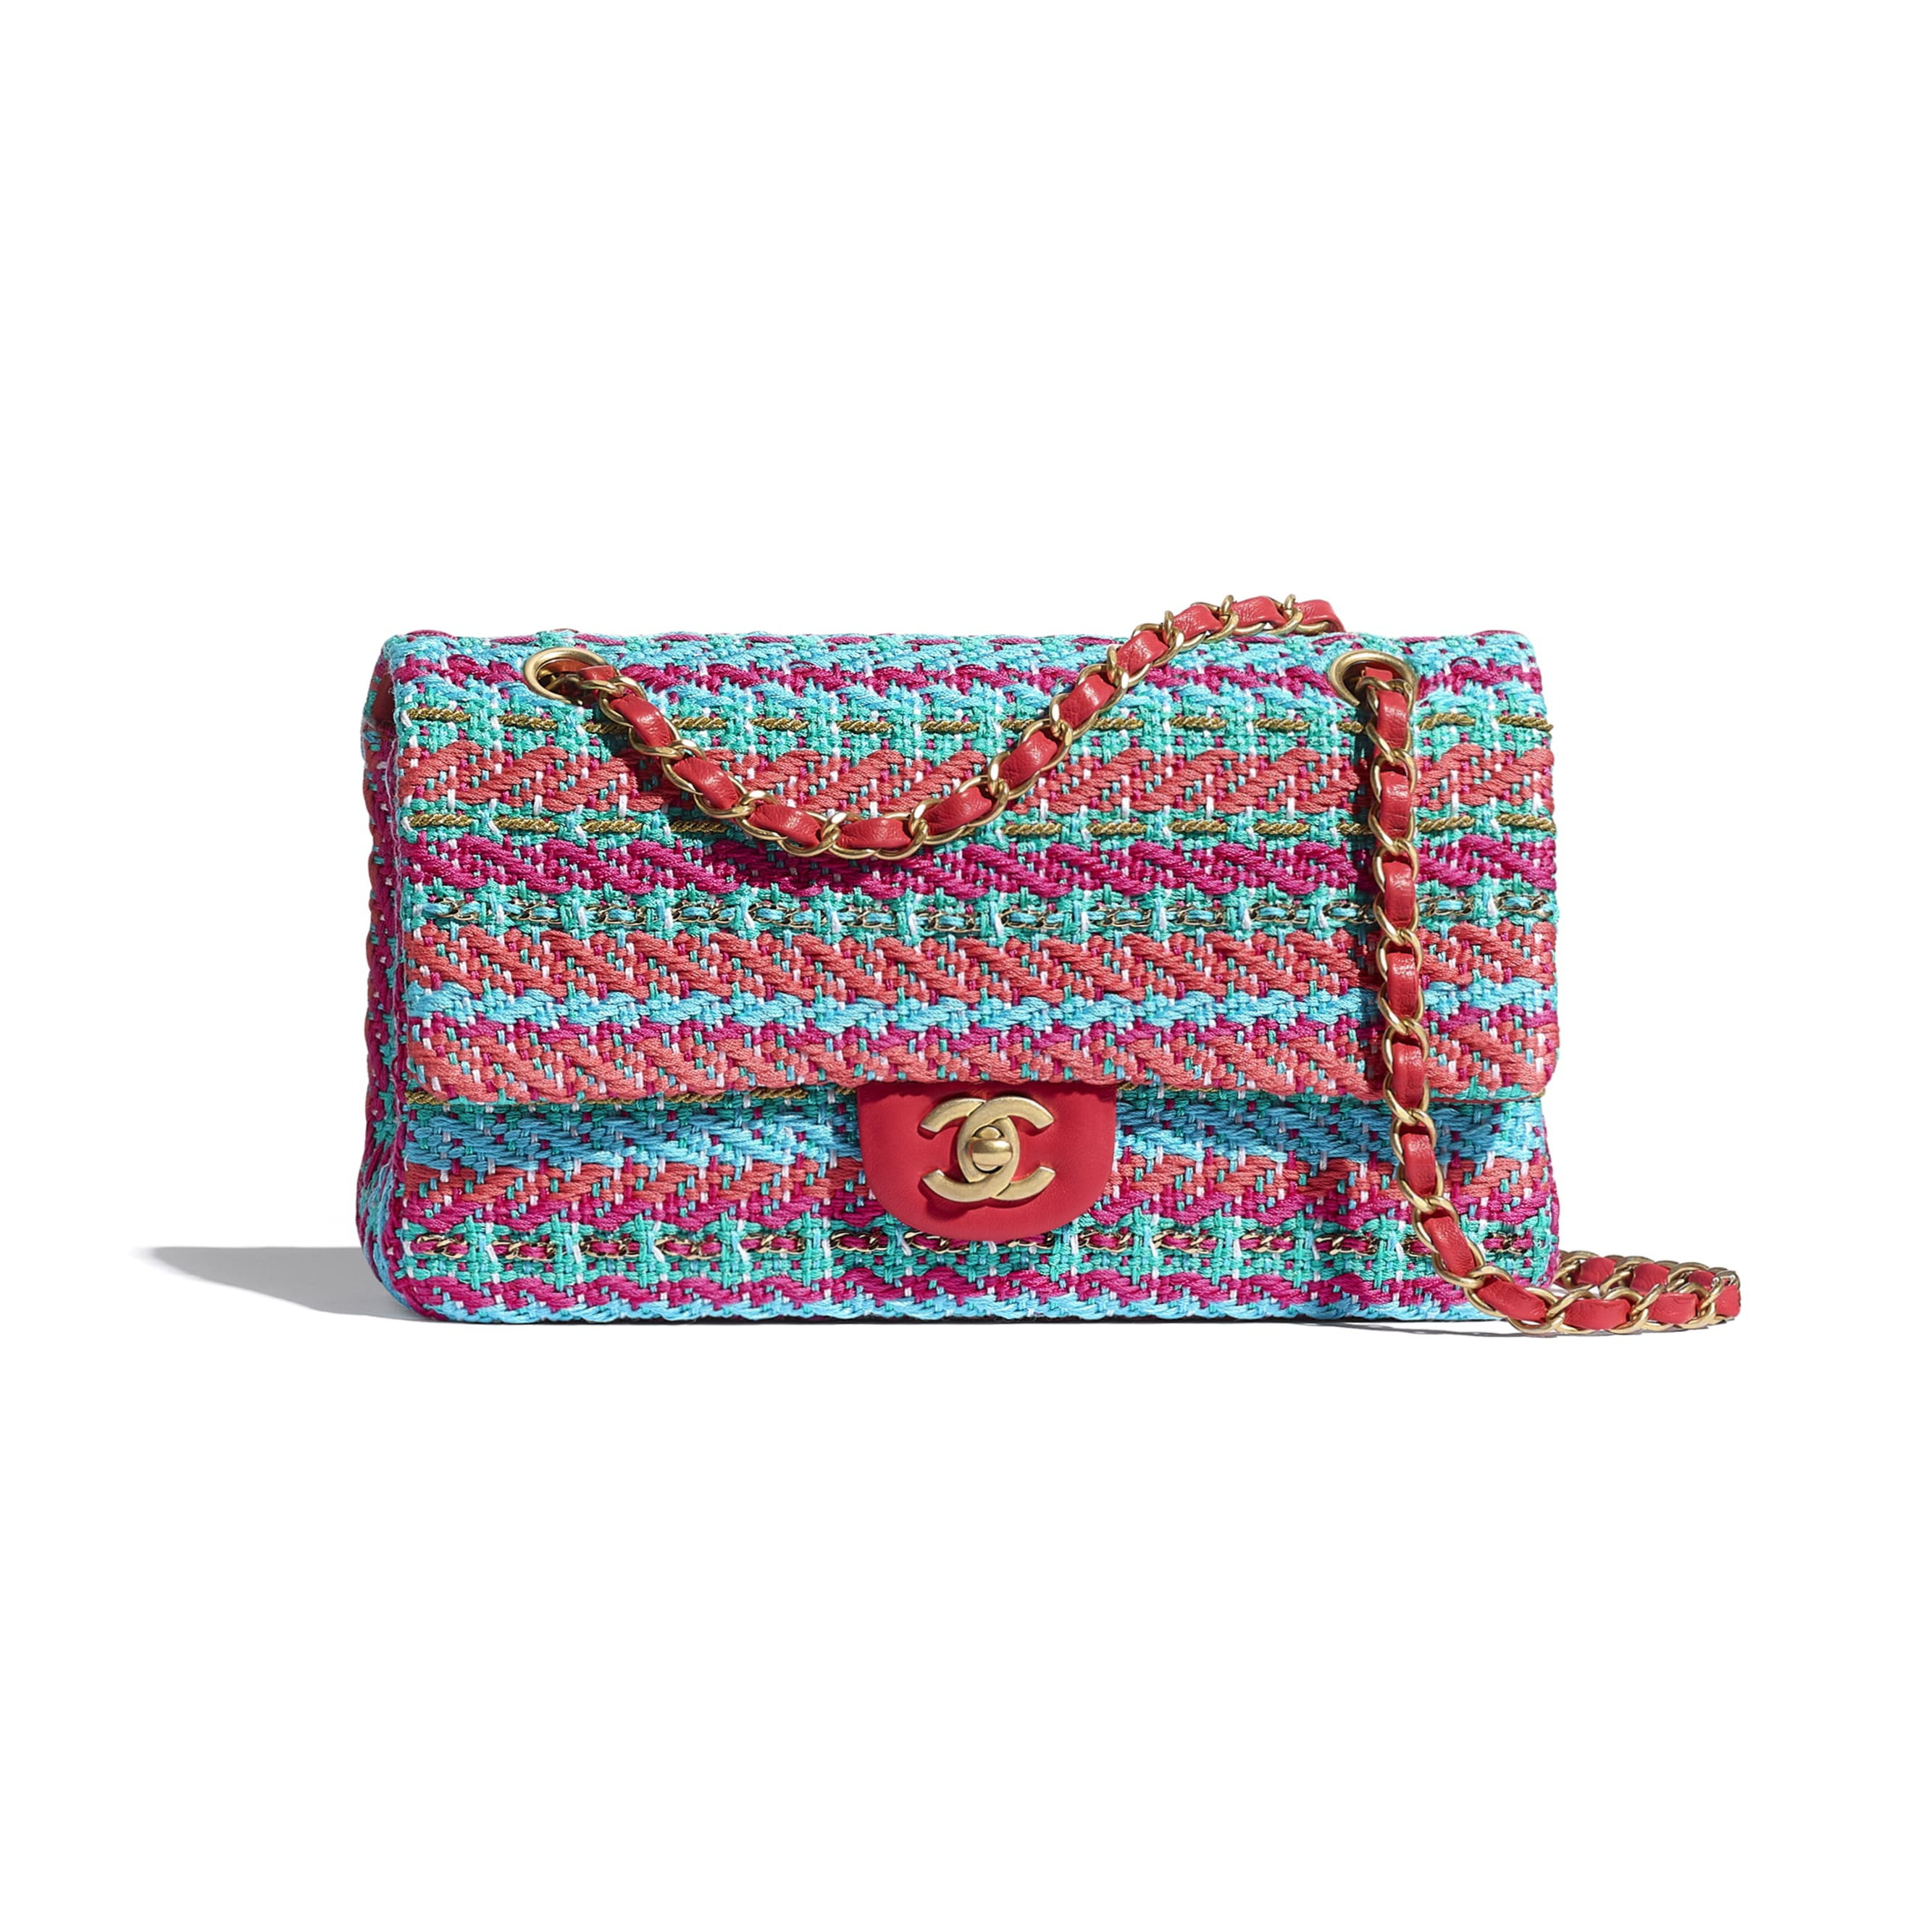 Flap Bag - Red, Fuchsia & Blue - Cotton, Mixed Fibers & Gold-Tone Metal - CHANEL - Default view - see standard sized version